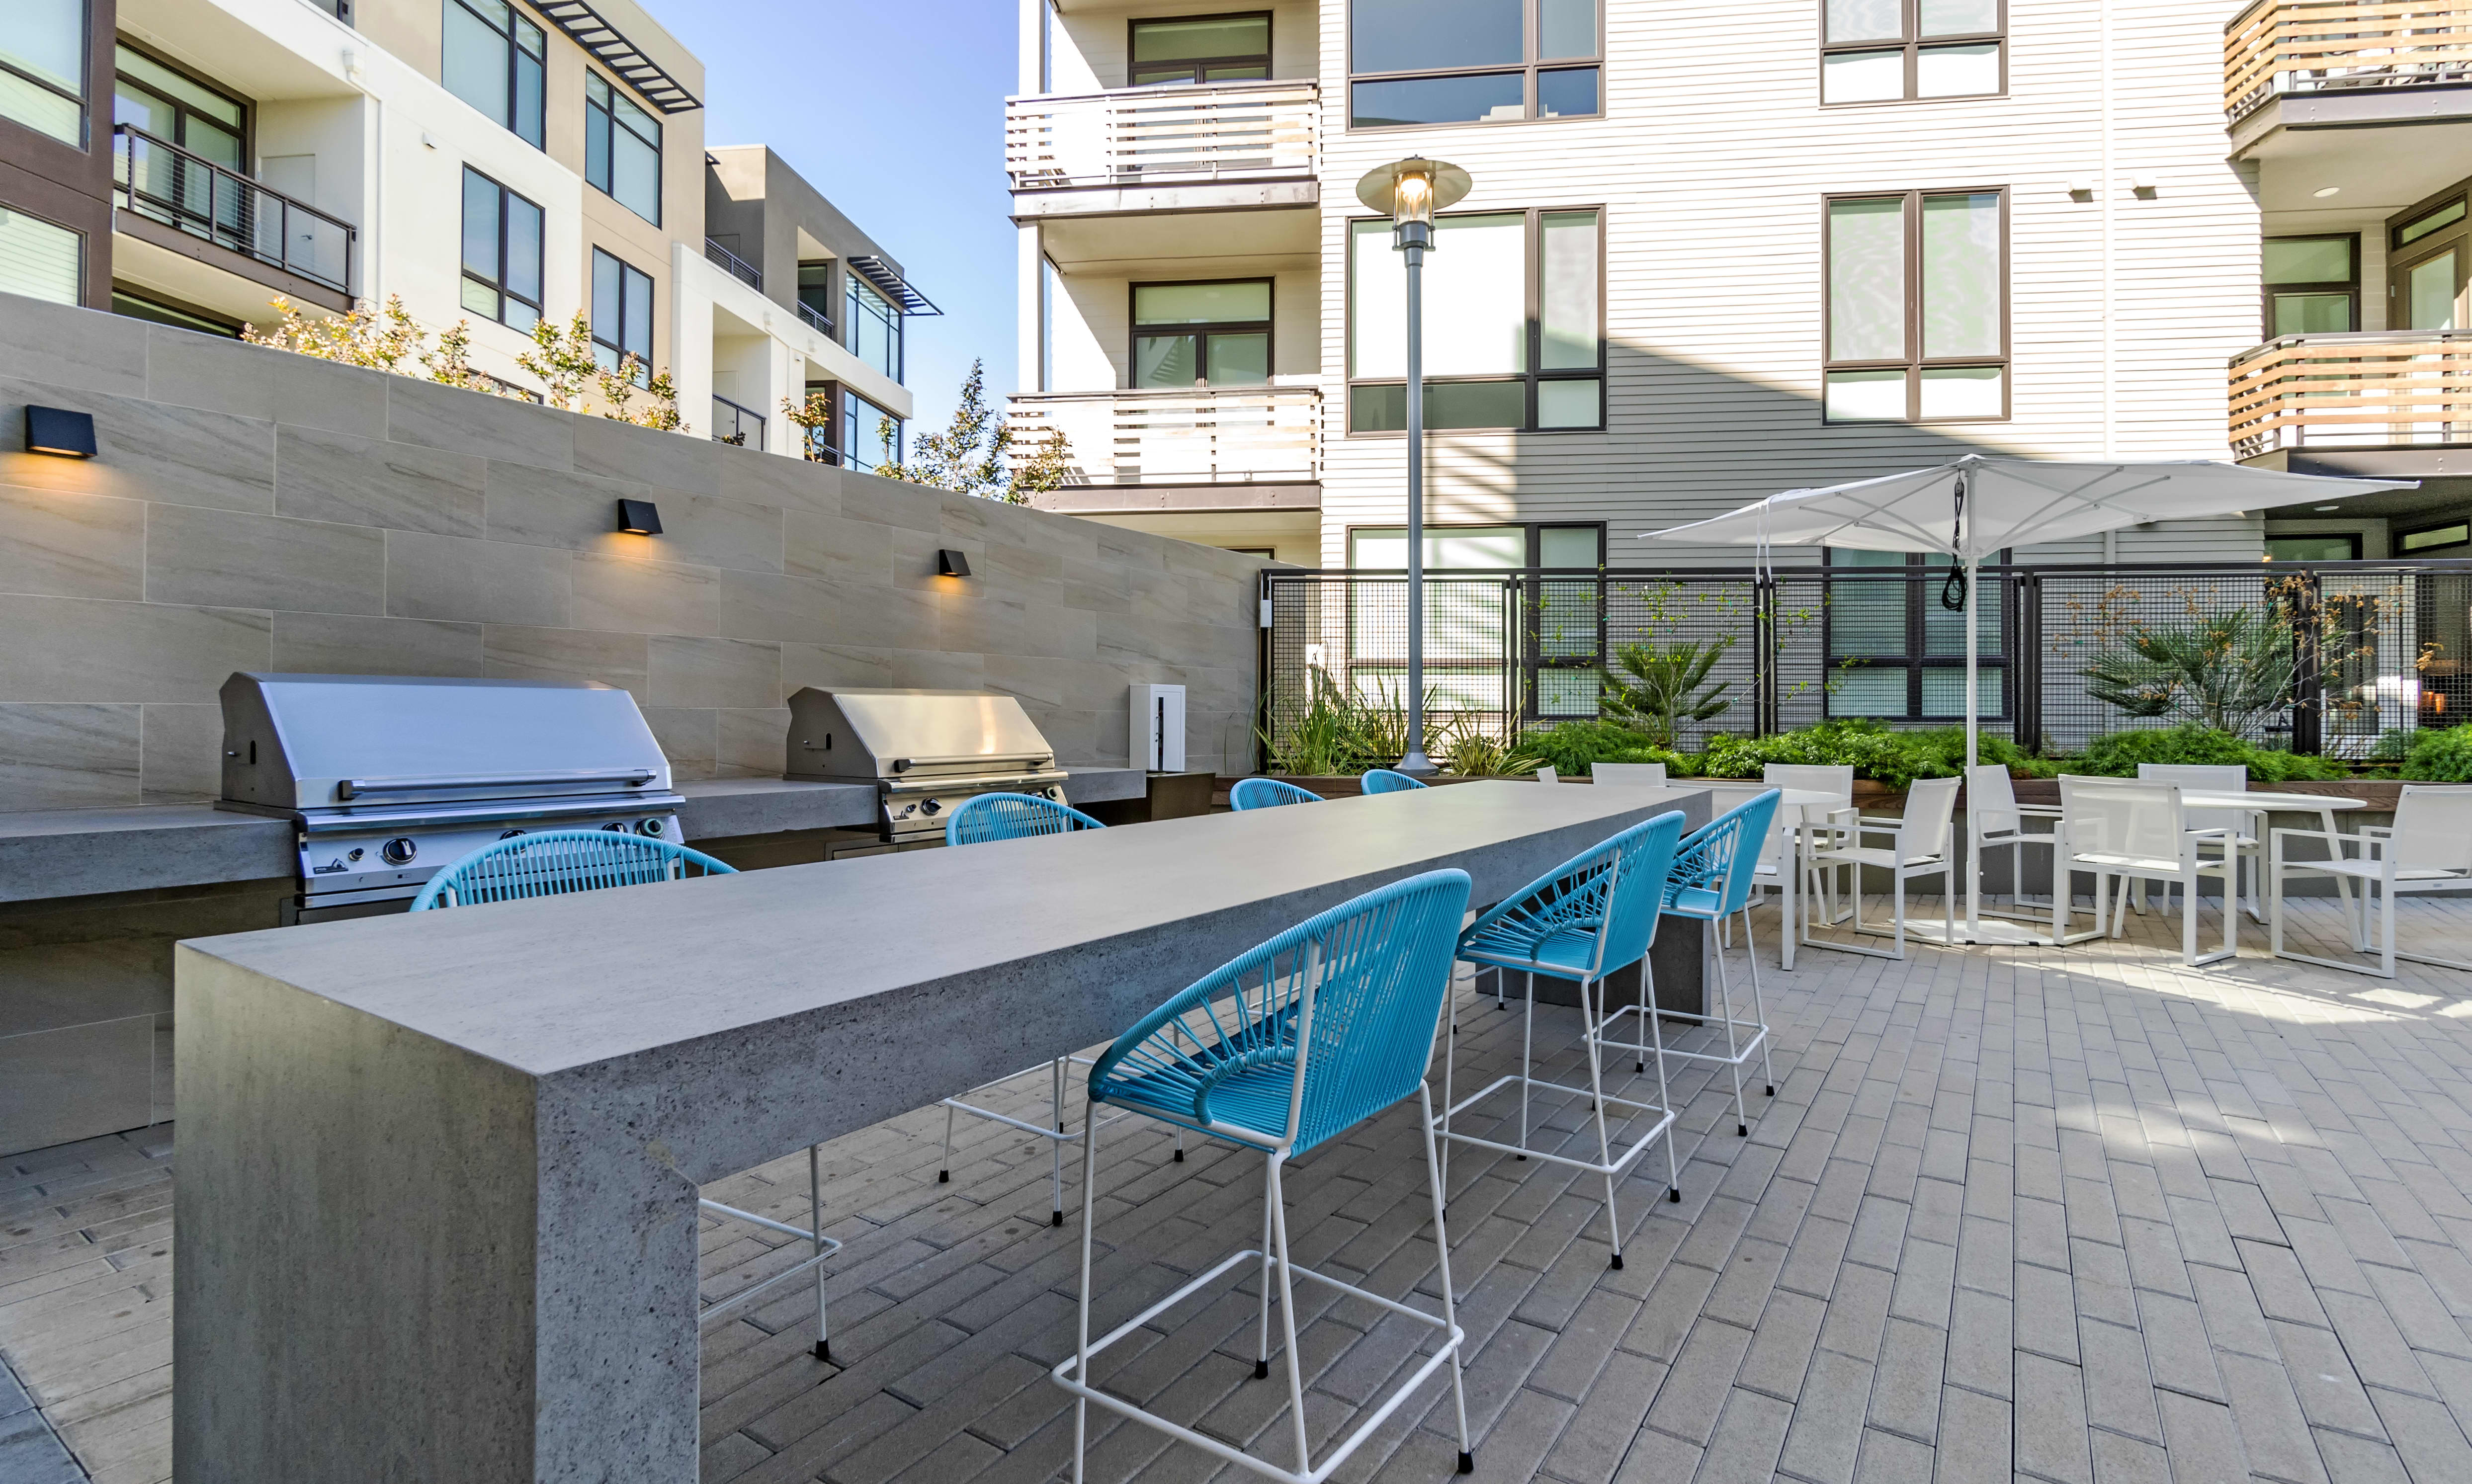 100 Moffett Apartments apartments in Mountain View CA to rent photo 9